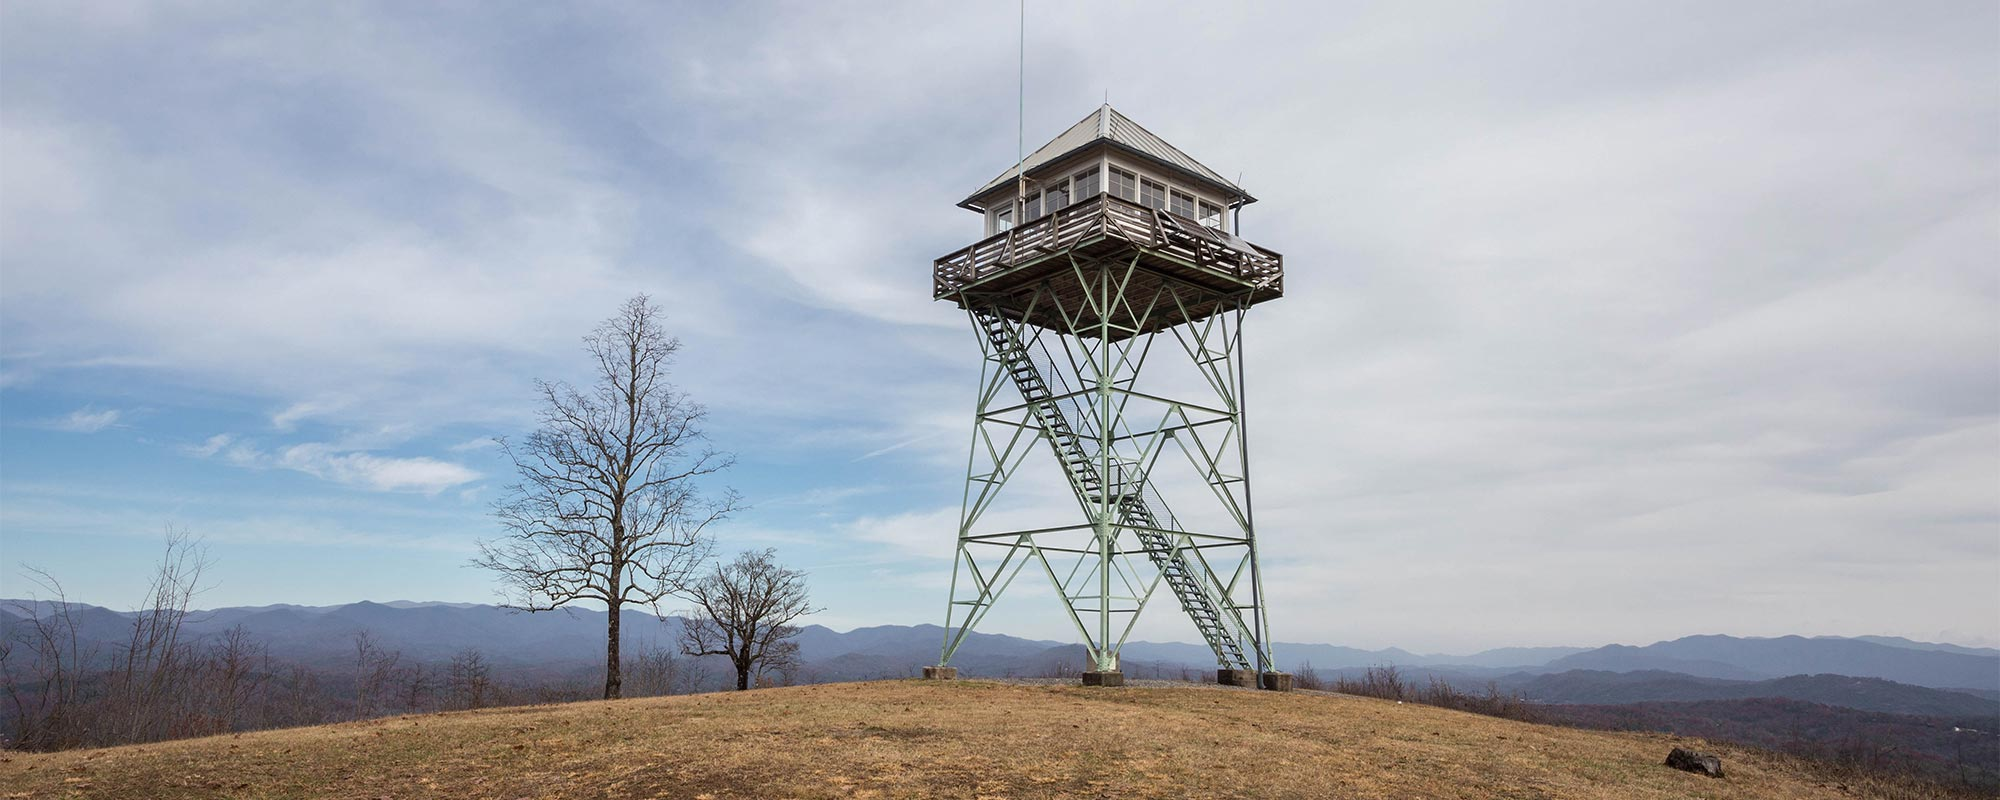 Panther Top Lookout Tower